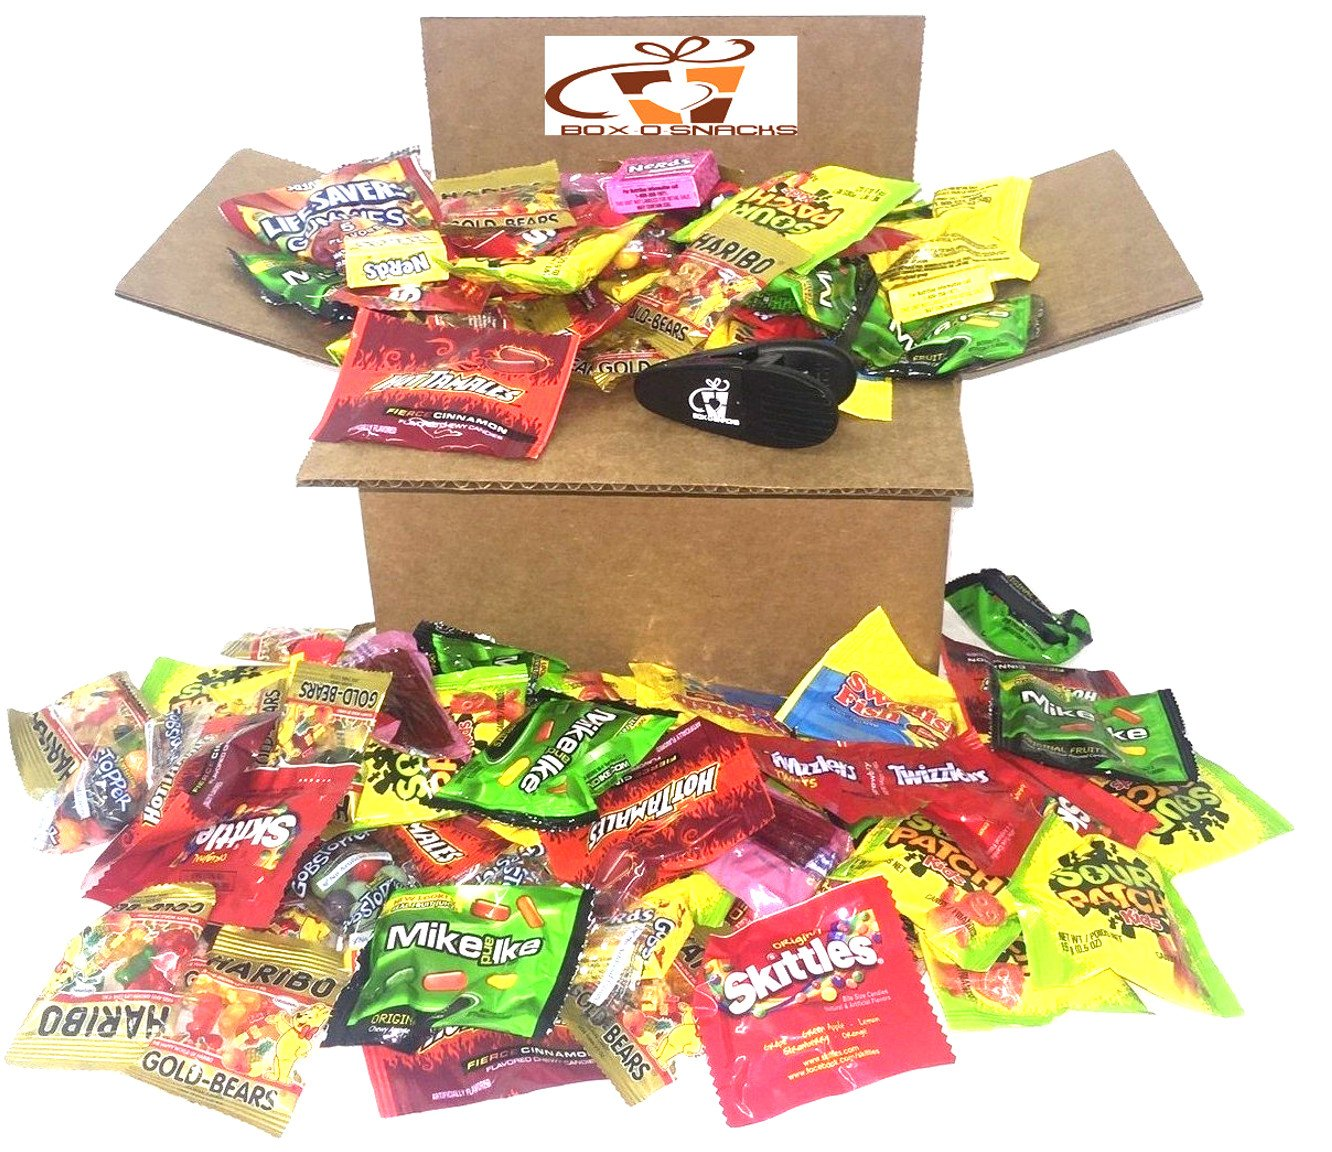 Amazon.com  Box-O-Snacks Super Candy Variety Box 3 Pounds of Candy  Grocery u0026 Gourmet Food  sc 1 st  Amazon.com & Amazon.com : Box-O-Snacks Super Candy Variety Box 3 Pounds of ... pezcame.com